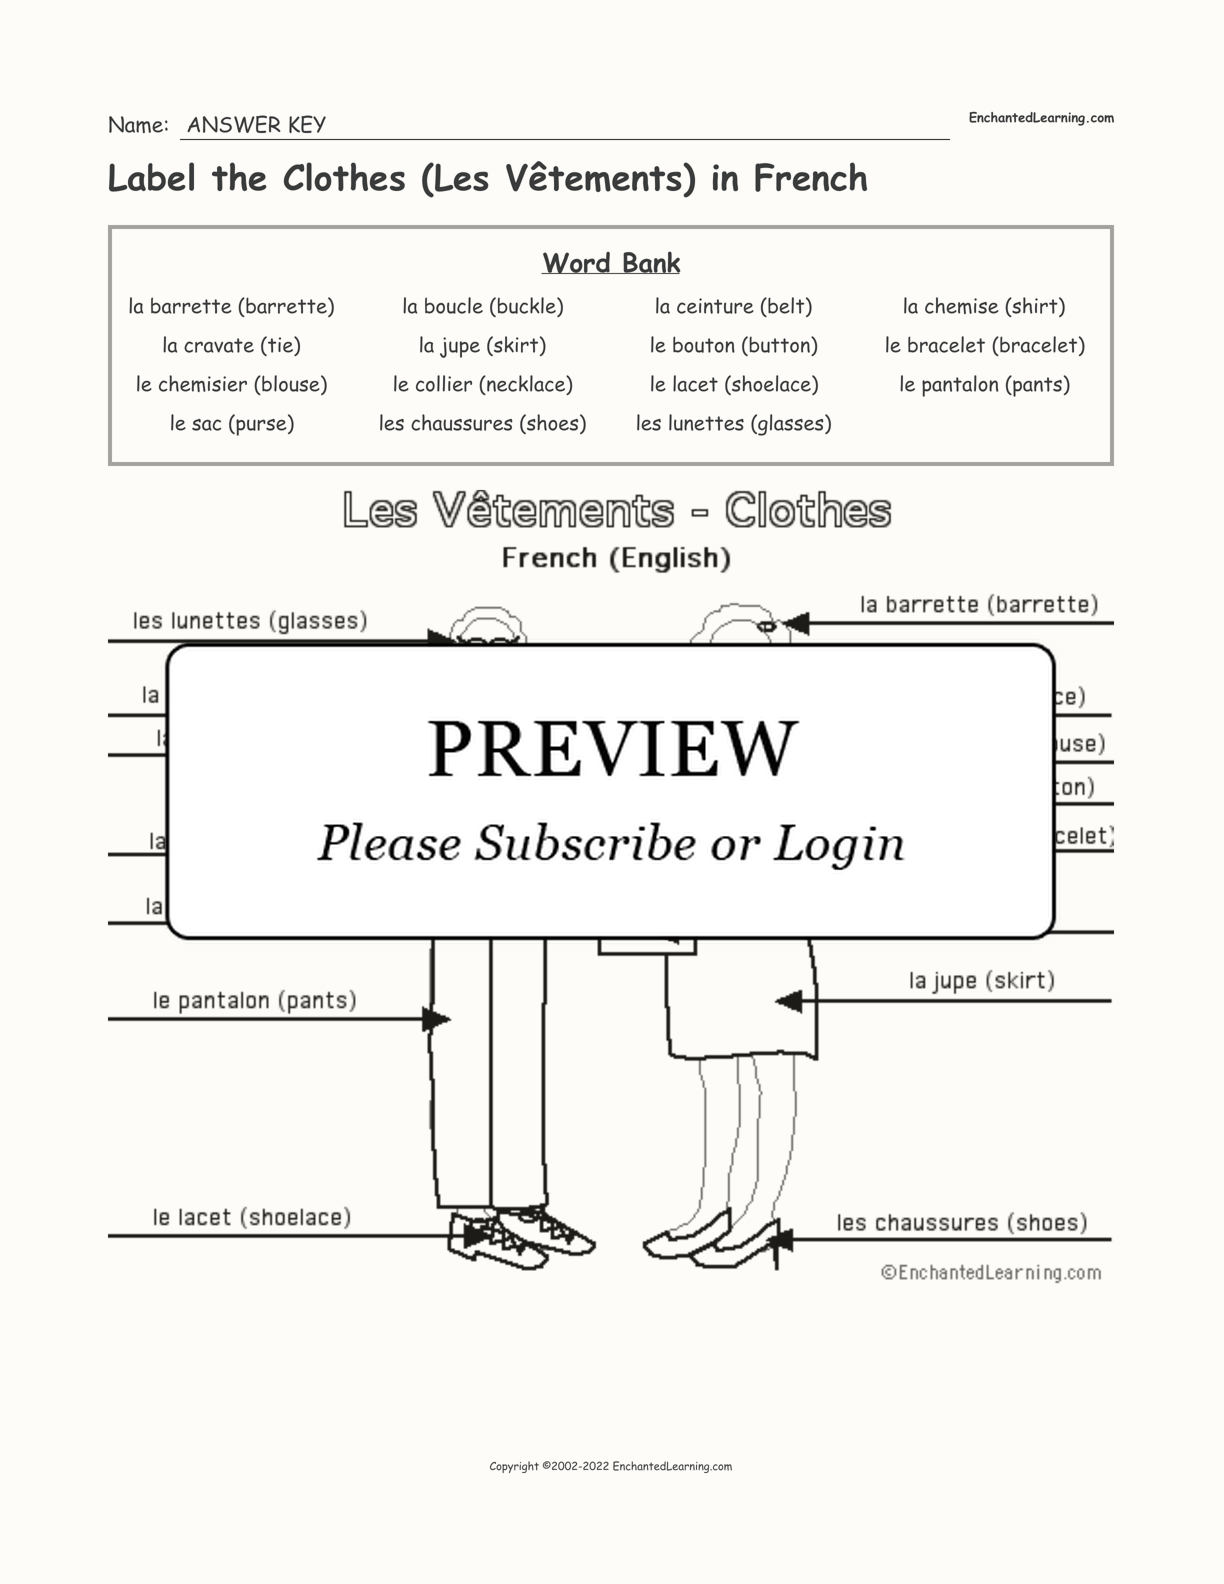 Label the Clothes (Les Vêtements) in French interactive worksheet page 2